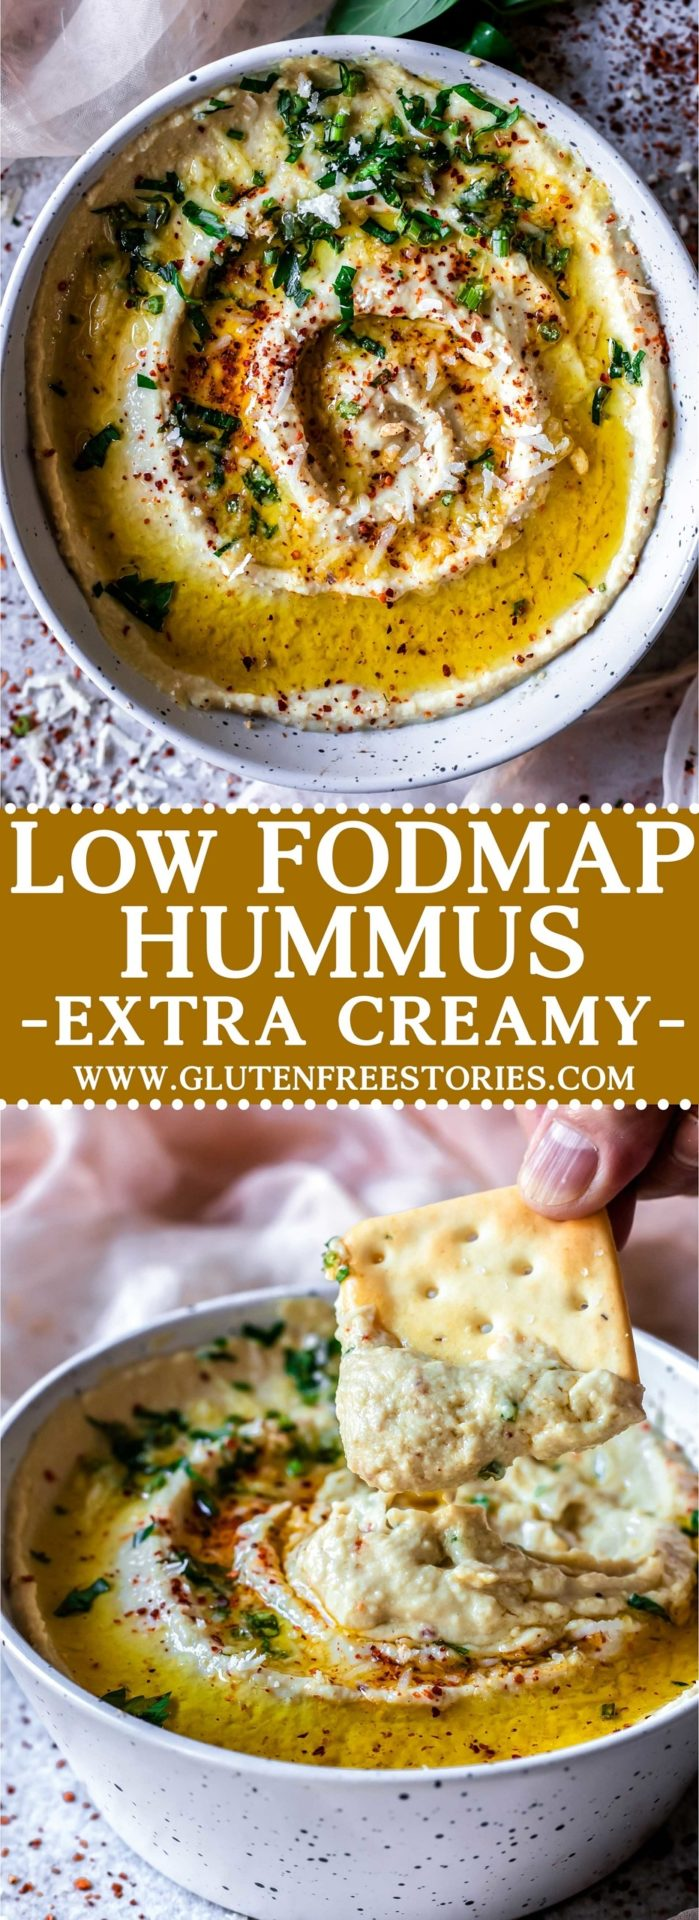 This Low FODMAP Hummus is extra creamy and smooth, super flavourful, very simple to make and so delicious!